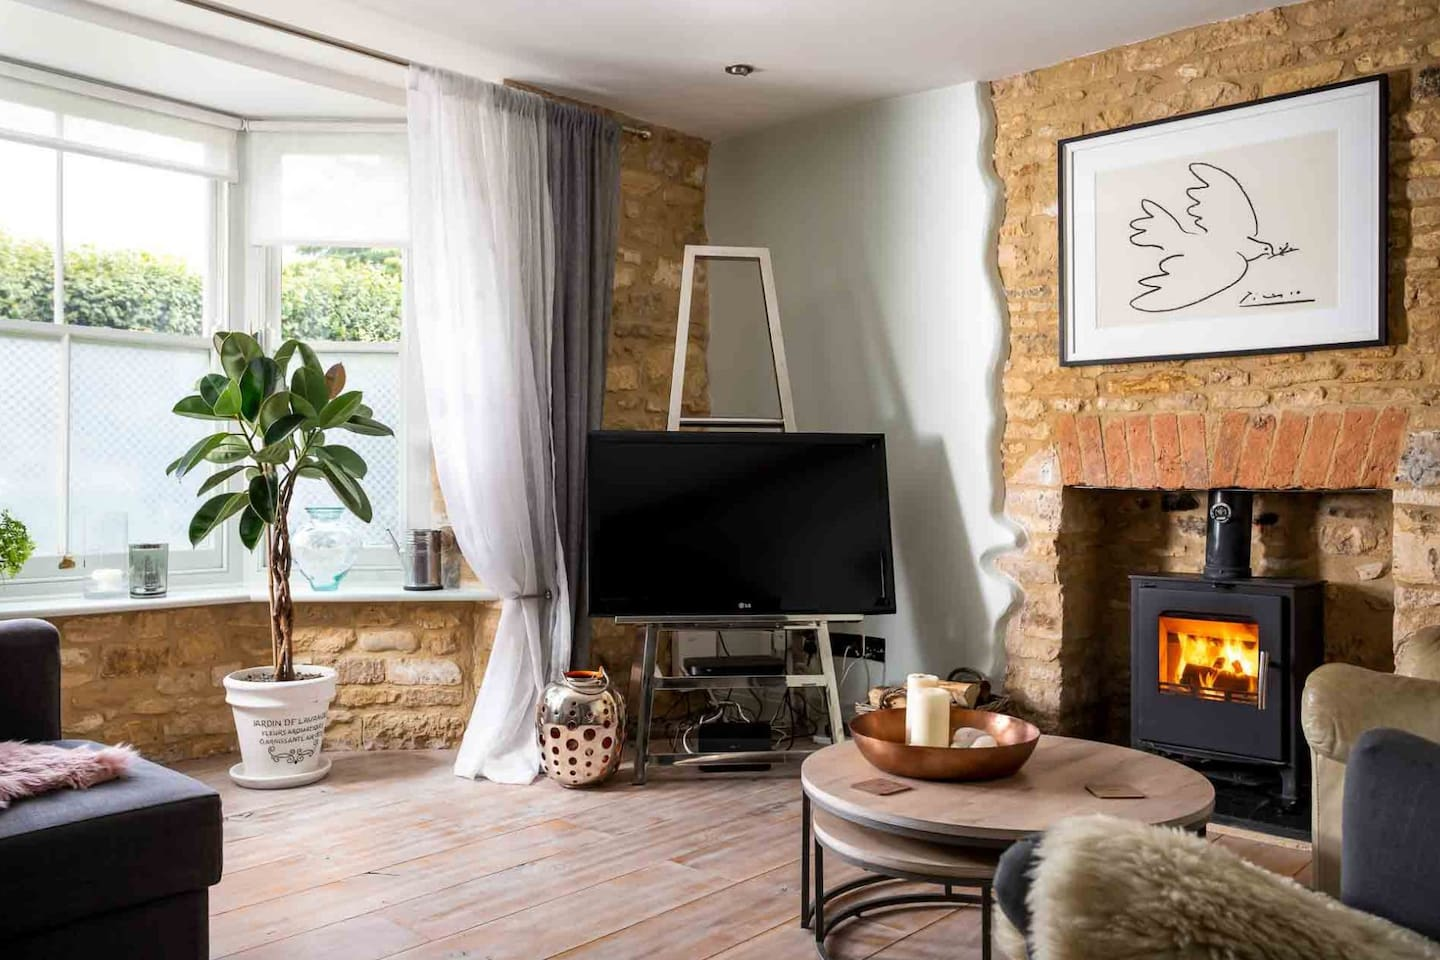 There is a lovely Cotswold stone fireplace with a cosy wood burning stove...